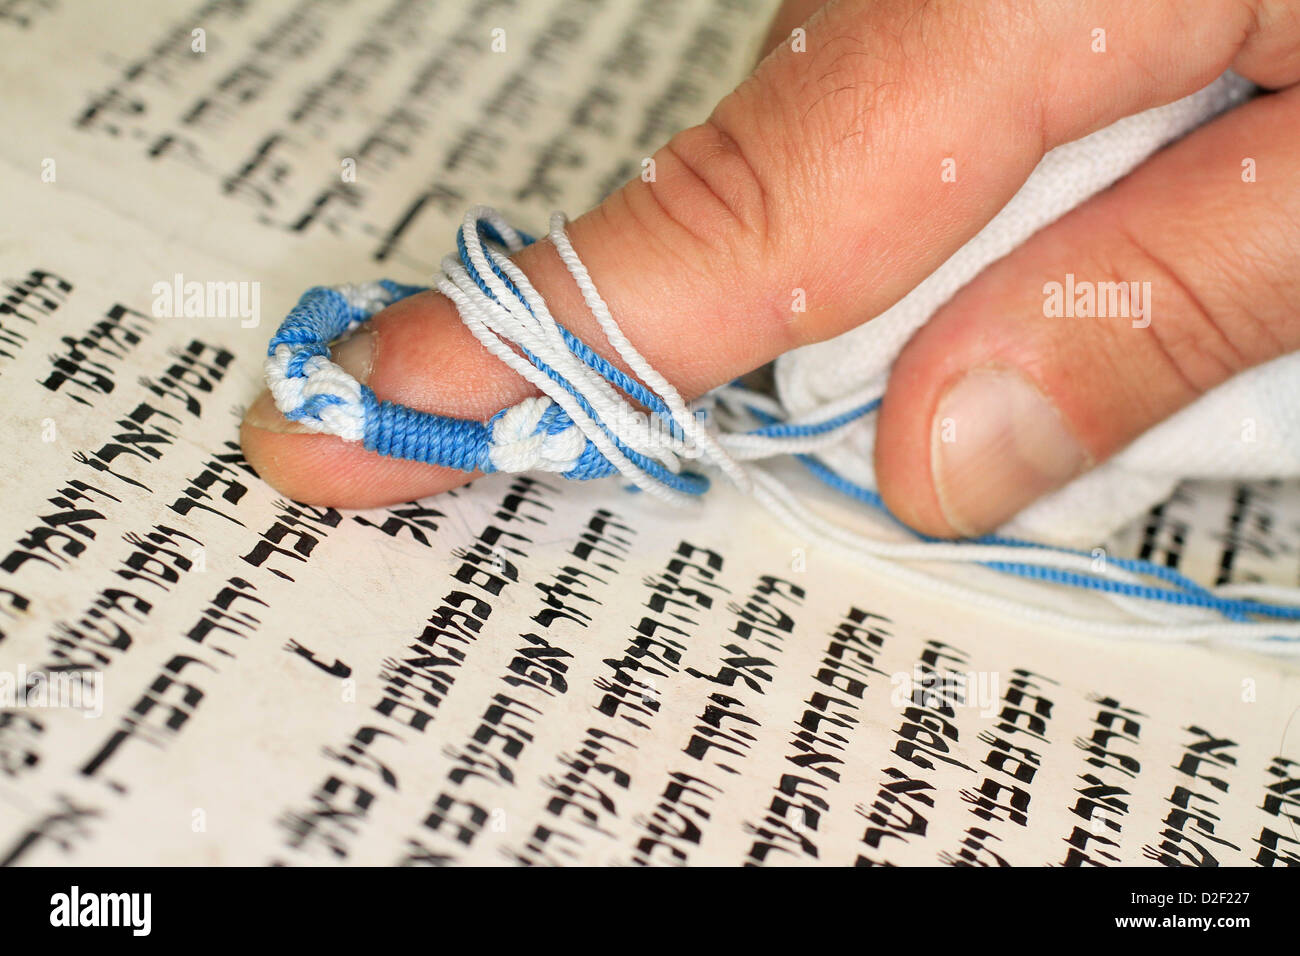 Reading the Torah in a synagogue. Paris. France. - Stock Image